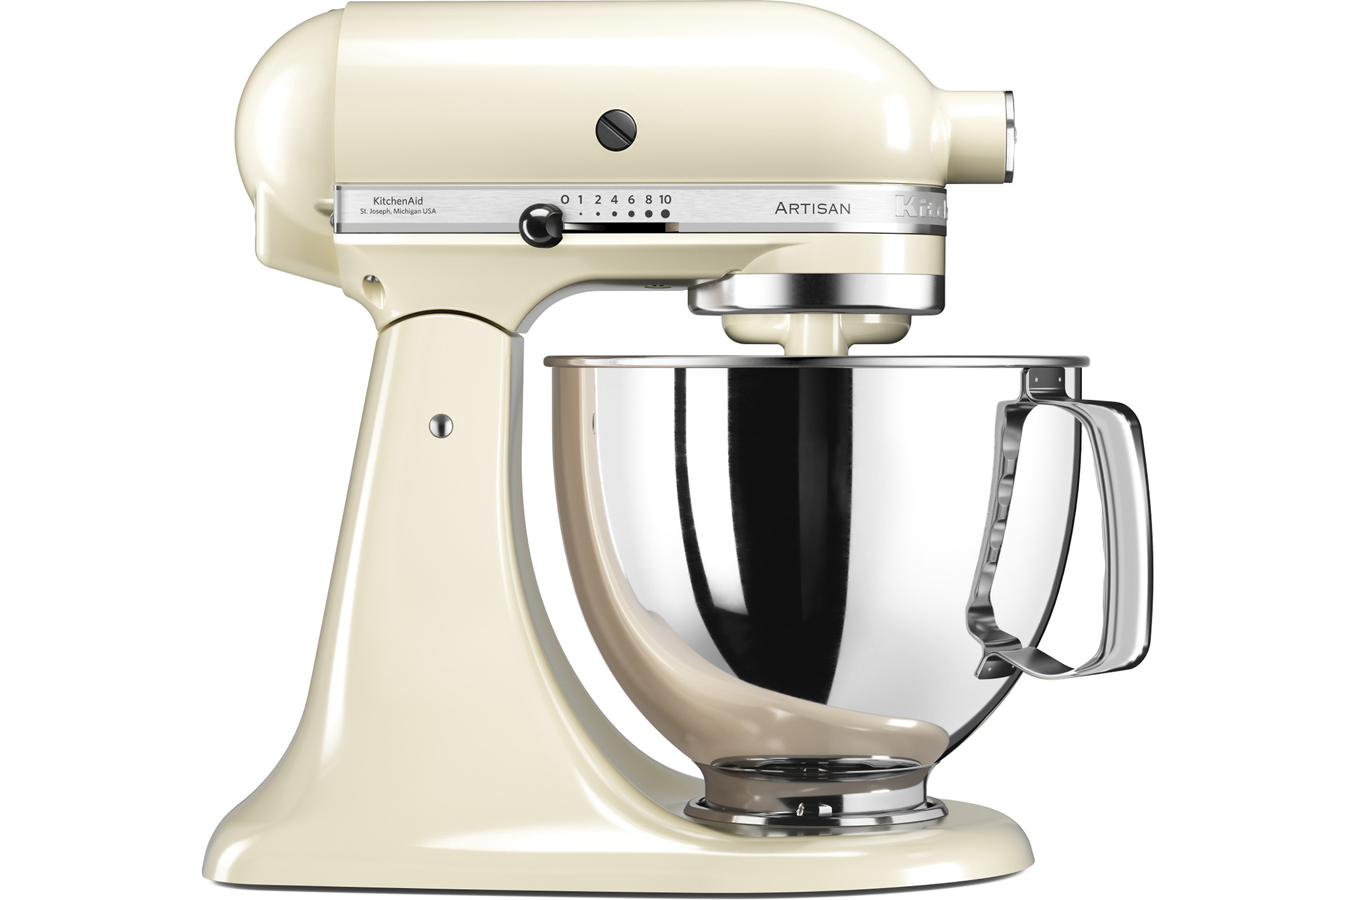 robot patissier kitchenaid artisan 5ksm125eac creme 4252713 darty. Black Bedroom Furniture Sets. Home Design Ideas